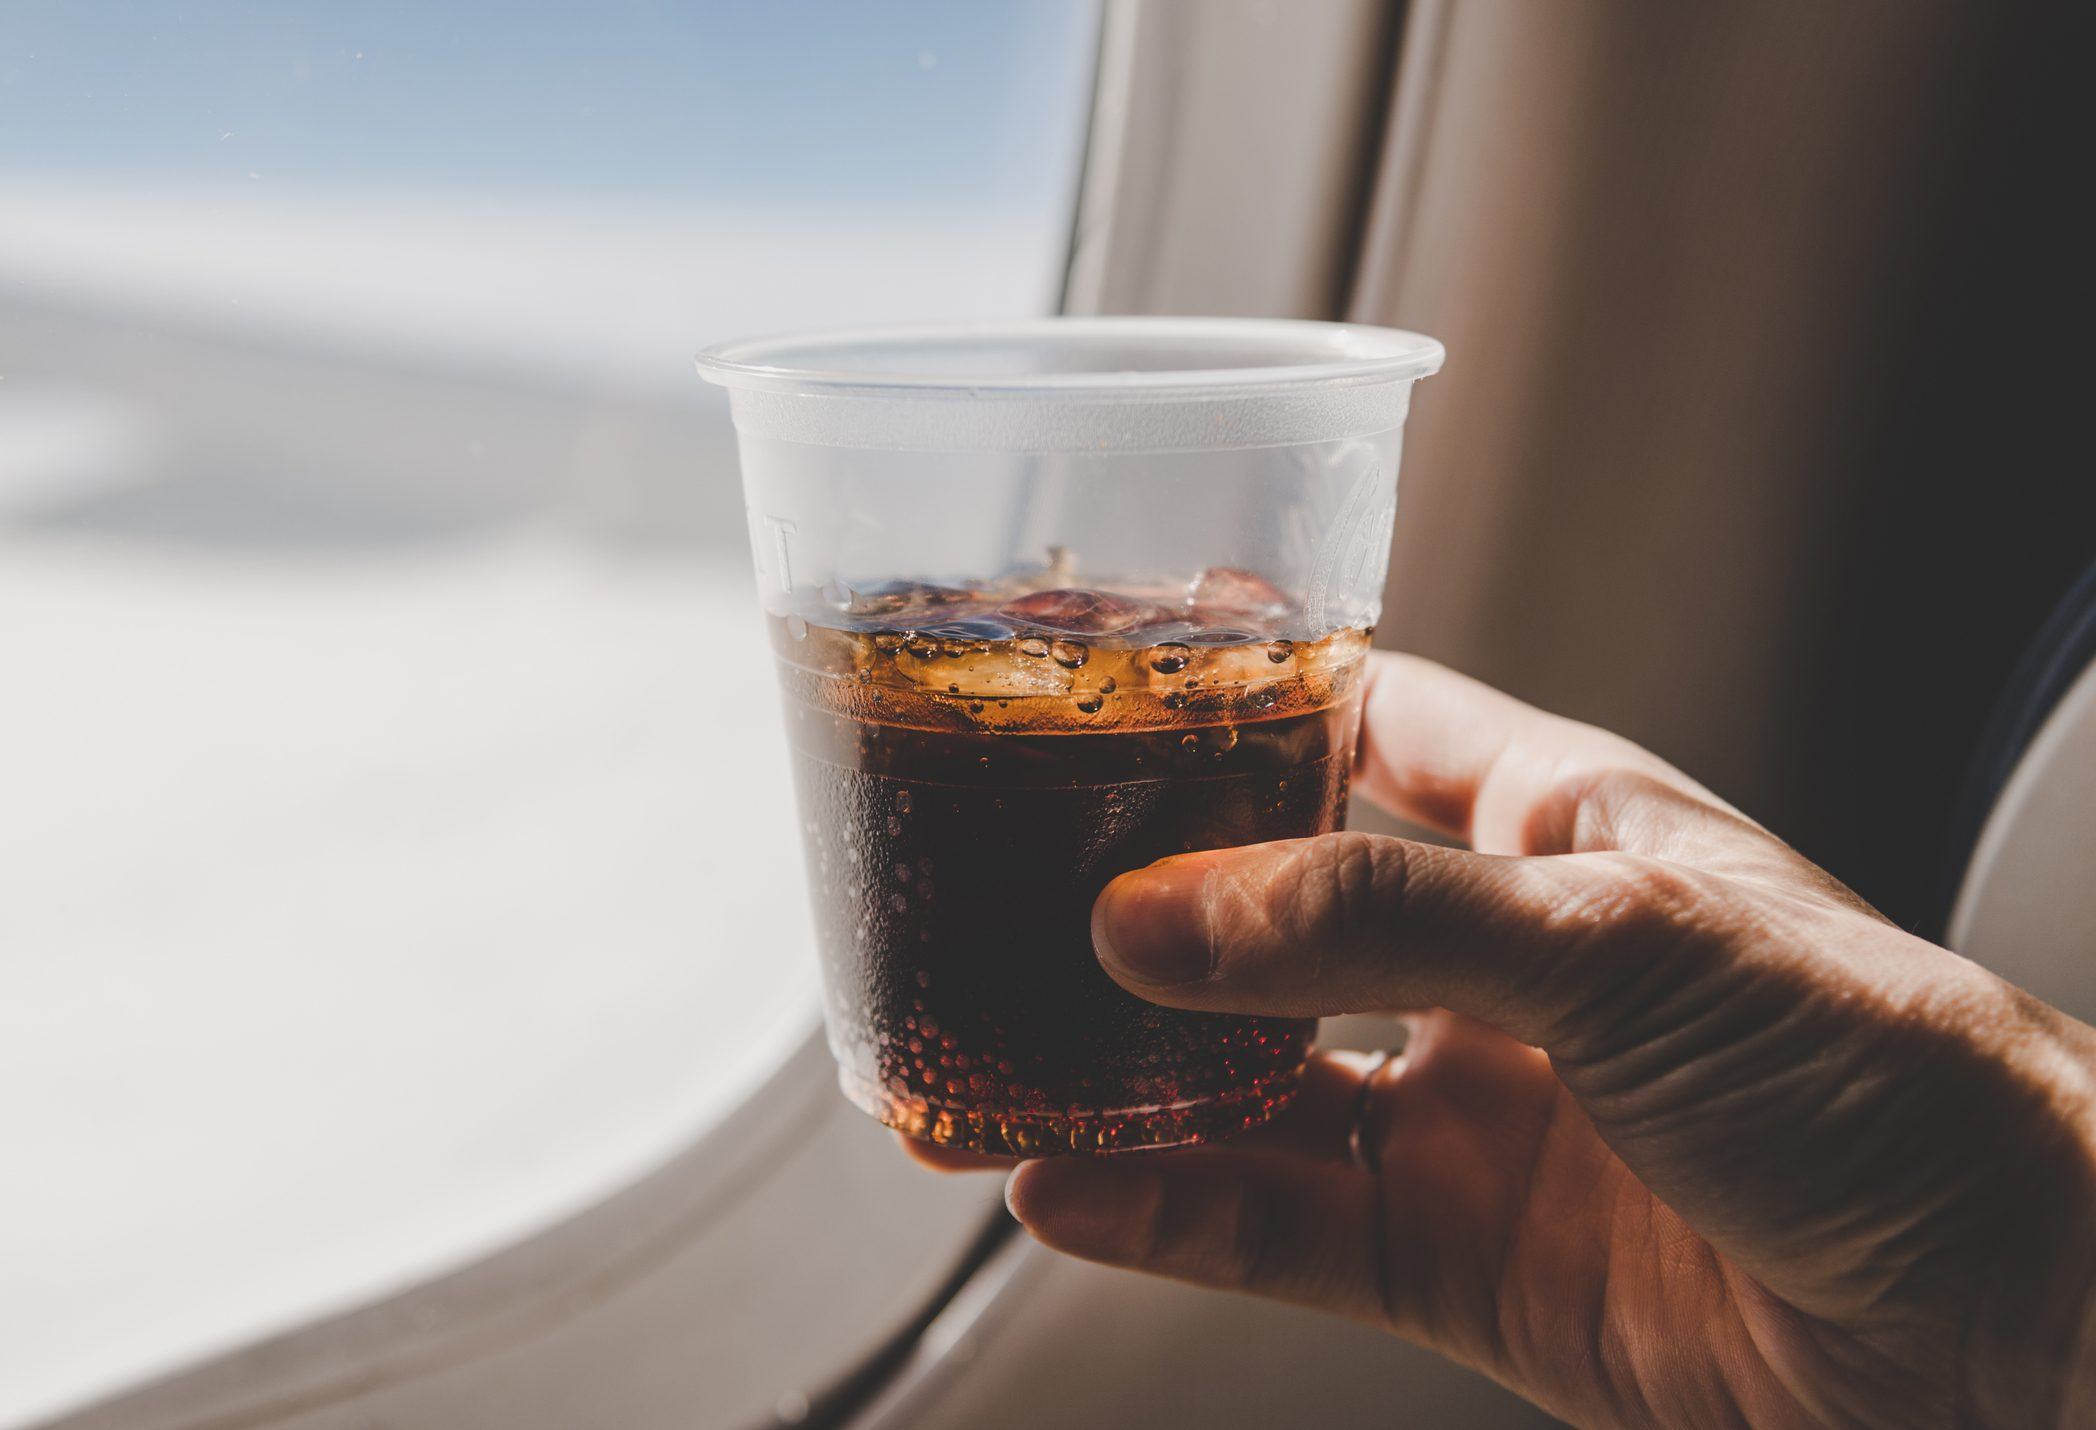 Drinking Glass By Airplane Window